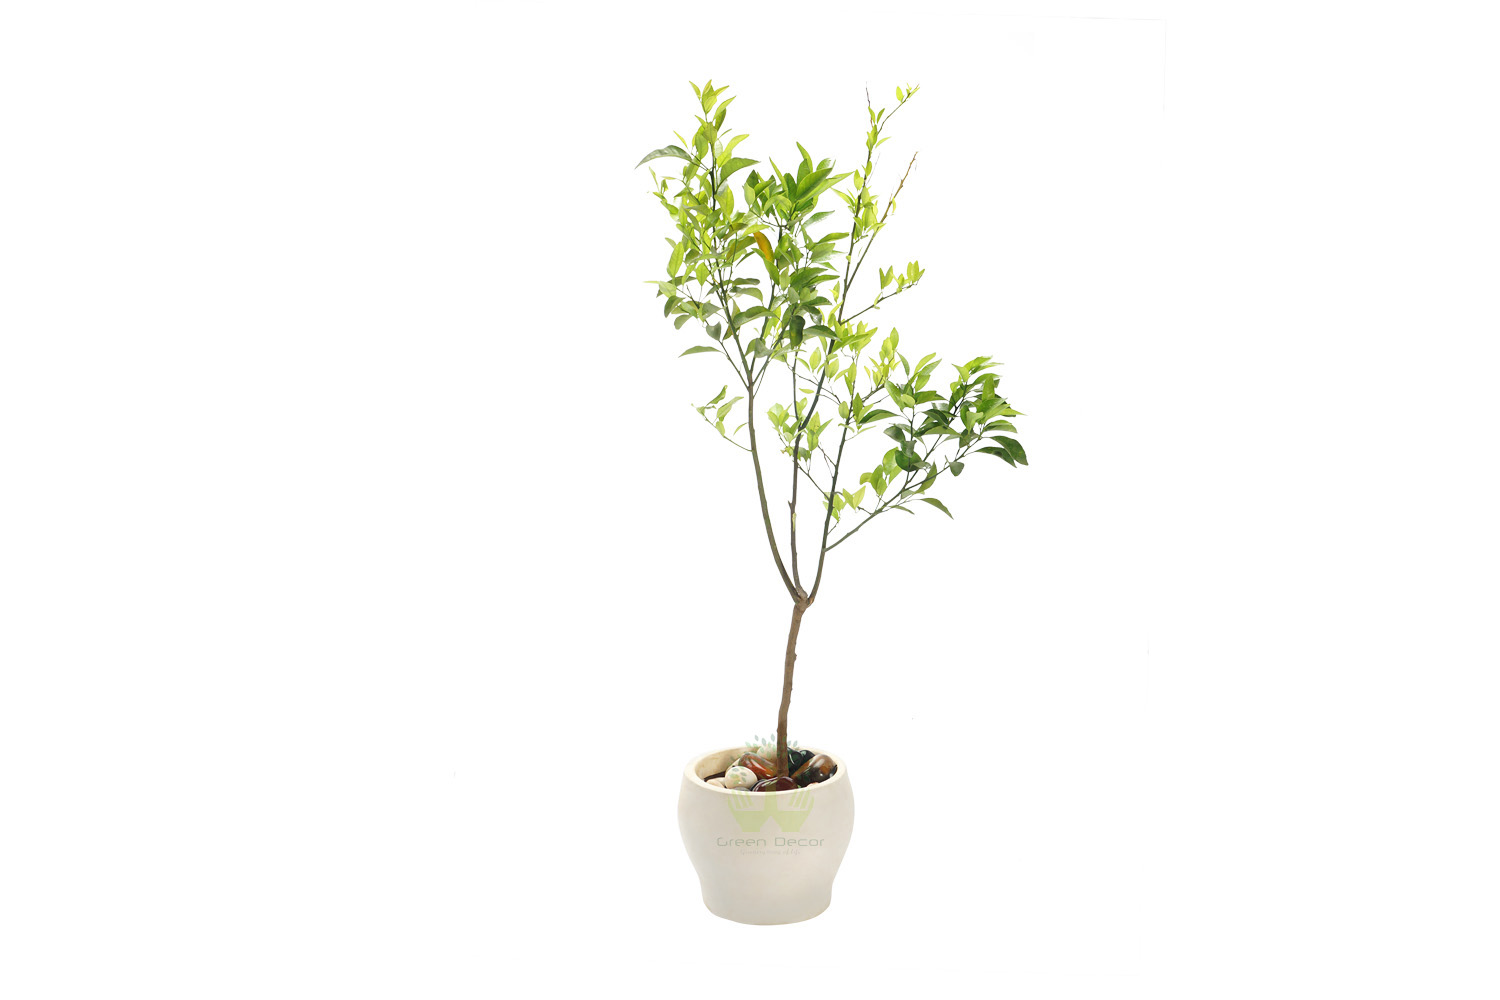 Buy Lemon Plants Front View , White Pots and seeds in Delhi NCR by the best online nursery shop Greendecor.